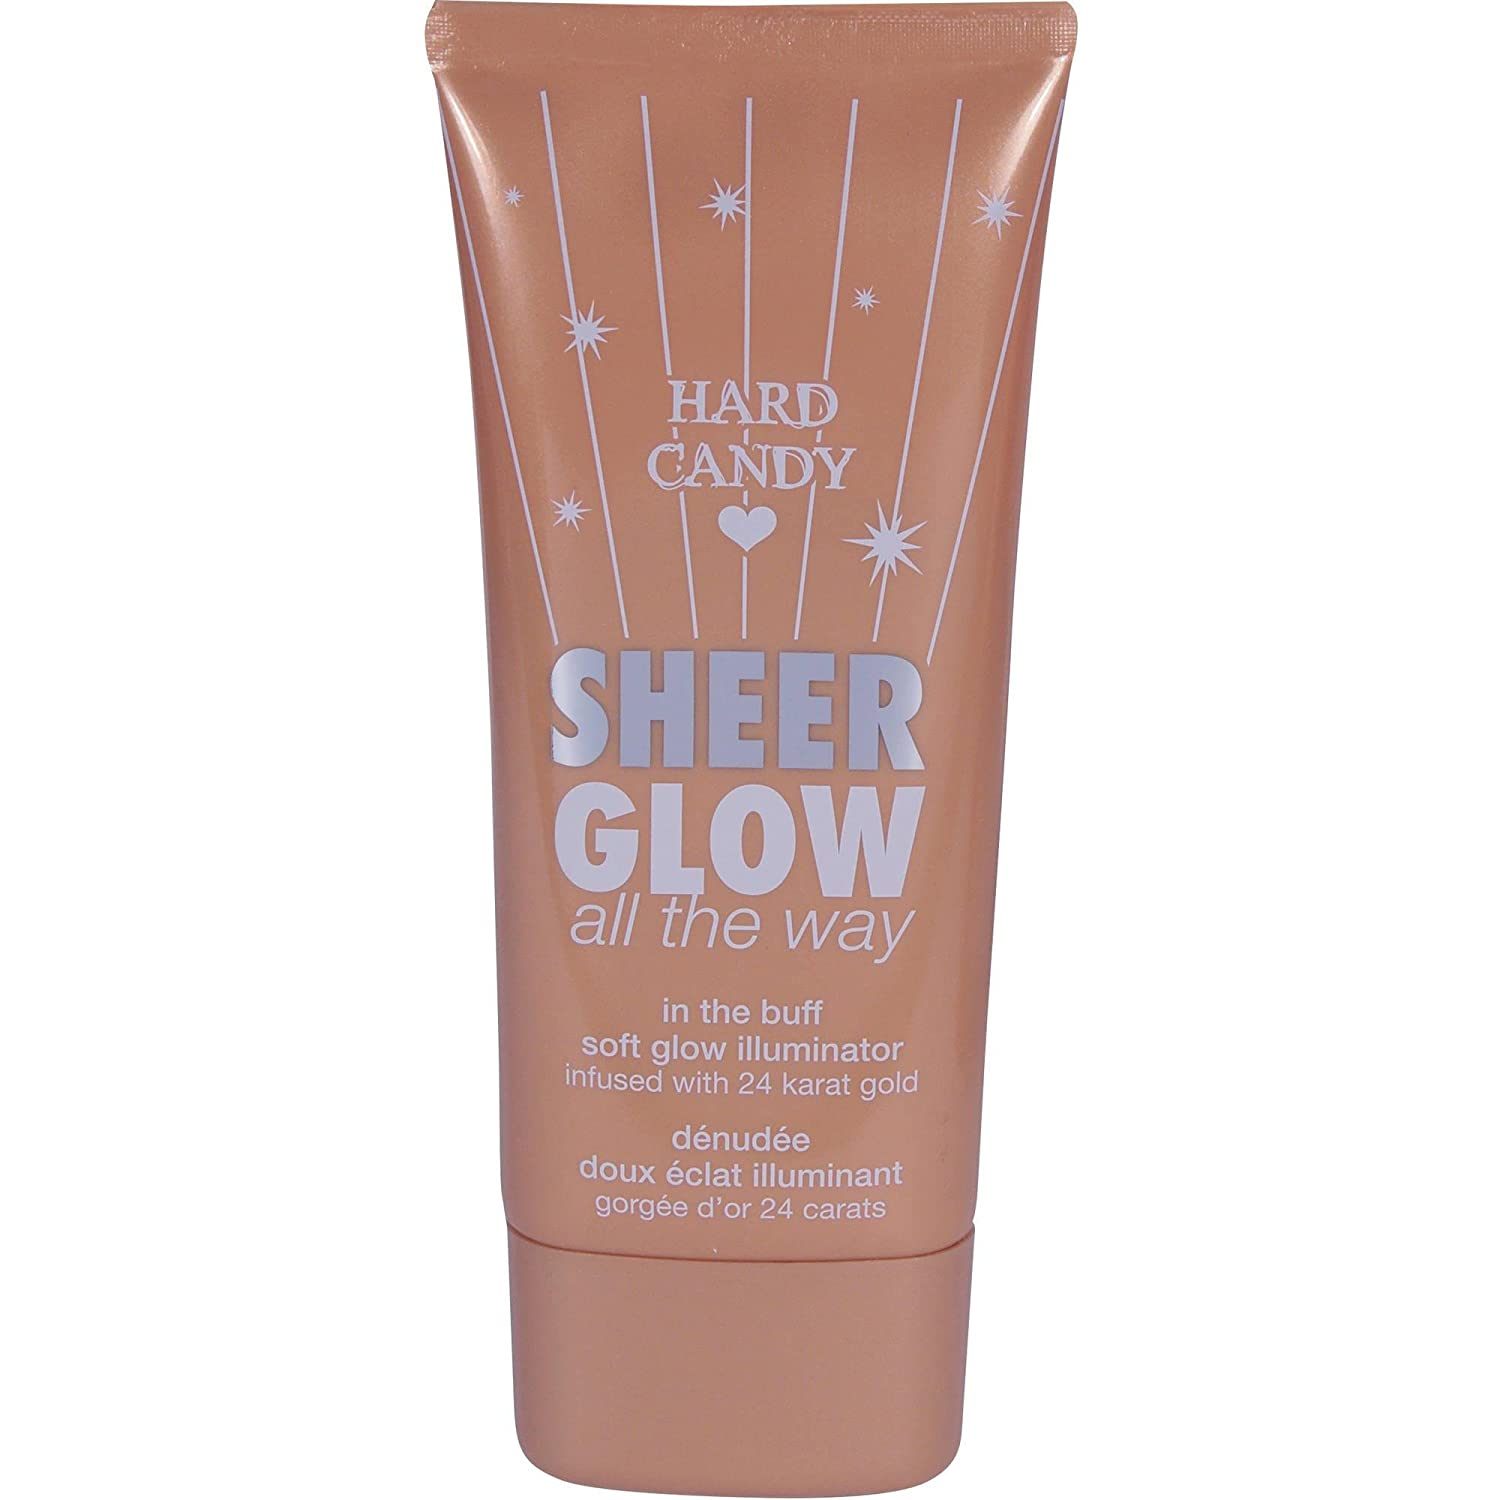 Hard Candy Sheer Glow All the Way Illuminator Infused with 24 Karat Gold #842 in the Buff 2.7 oz